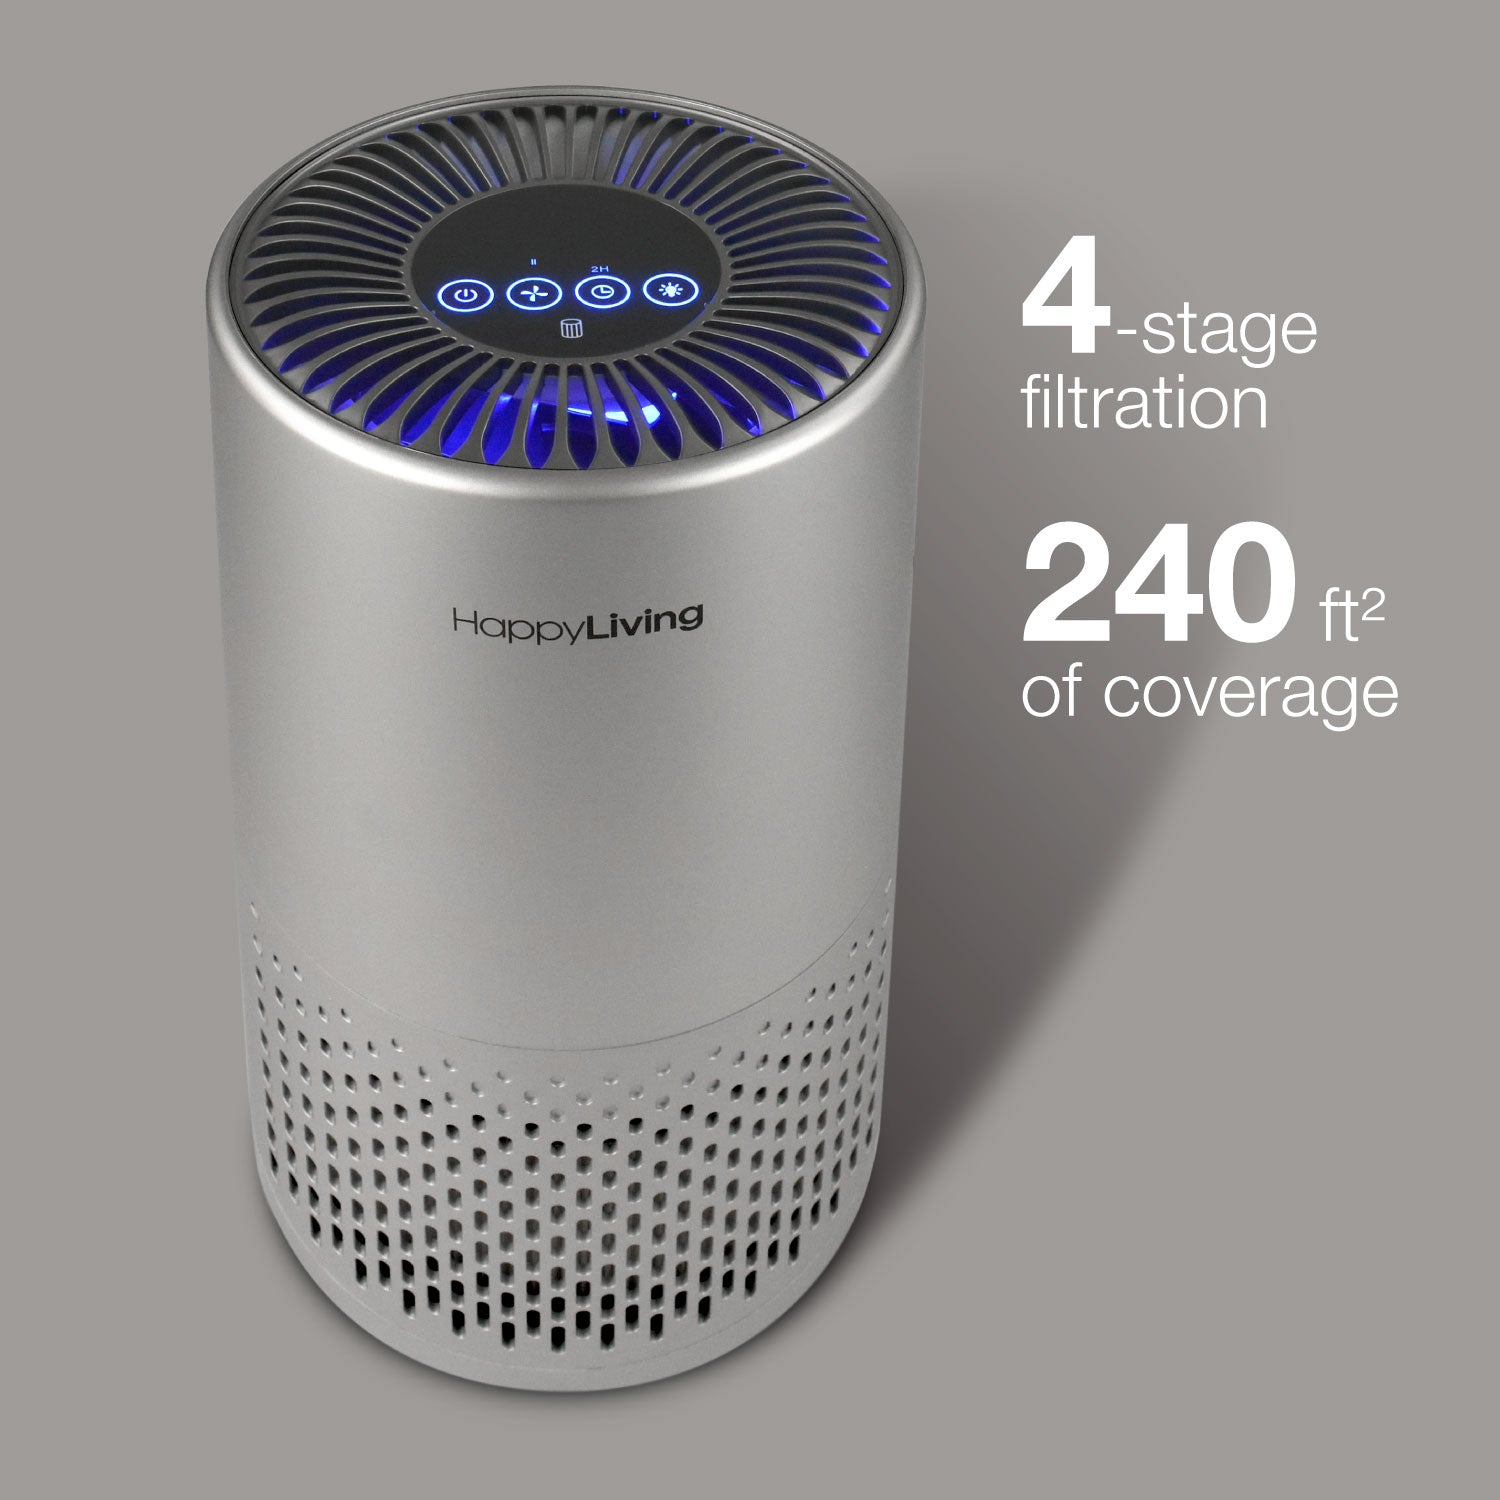 An image showing how the gray air purifier has 4 stages and 240 square feet of coverage.